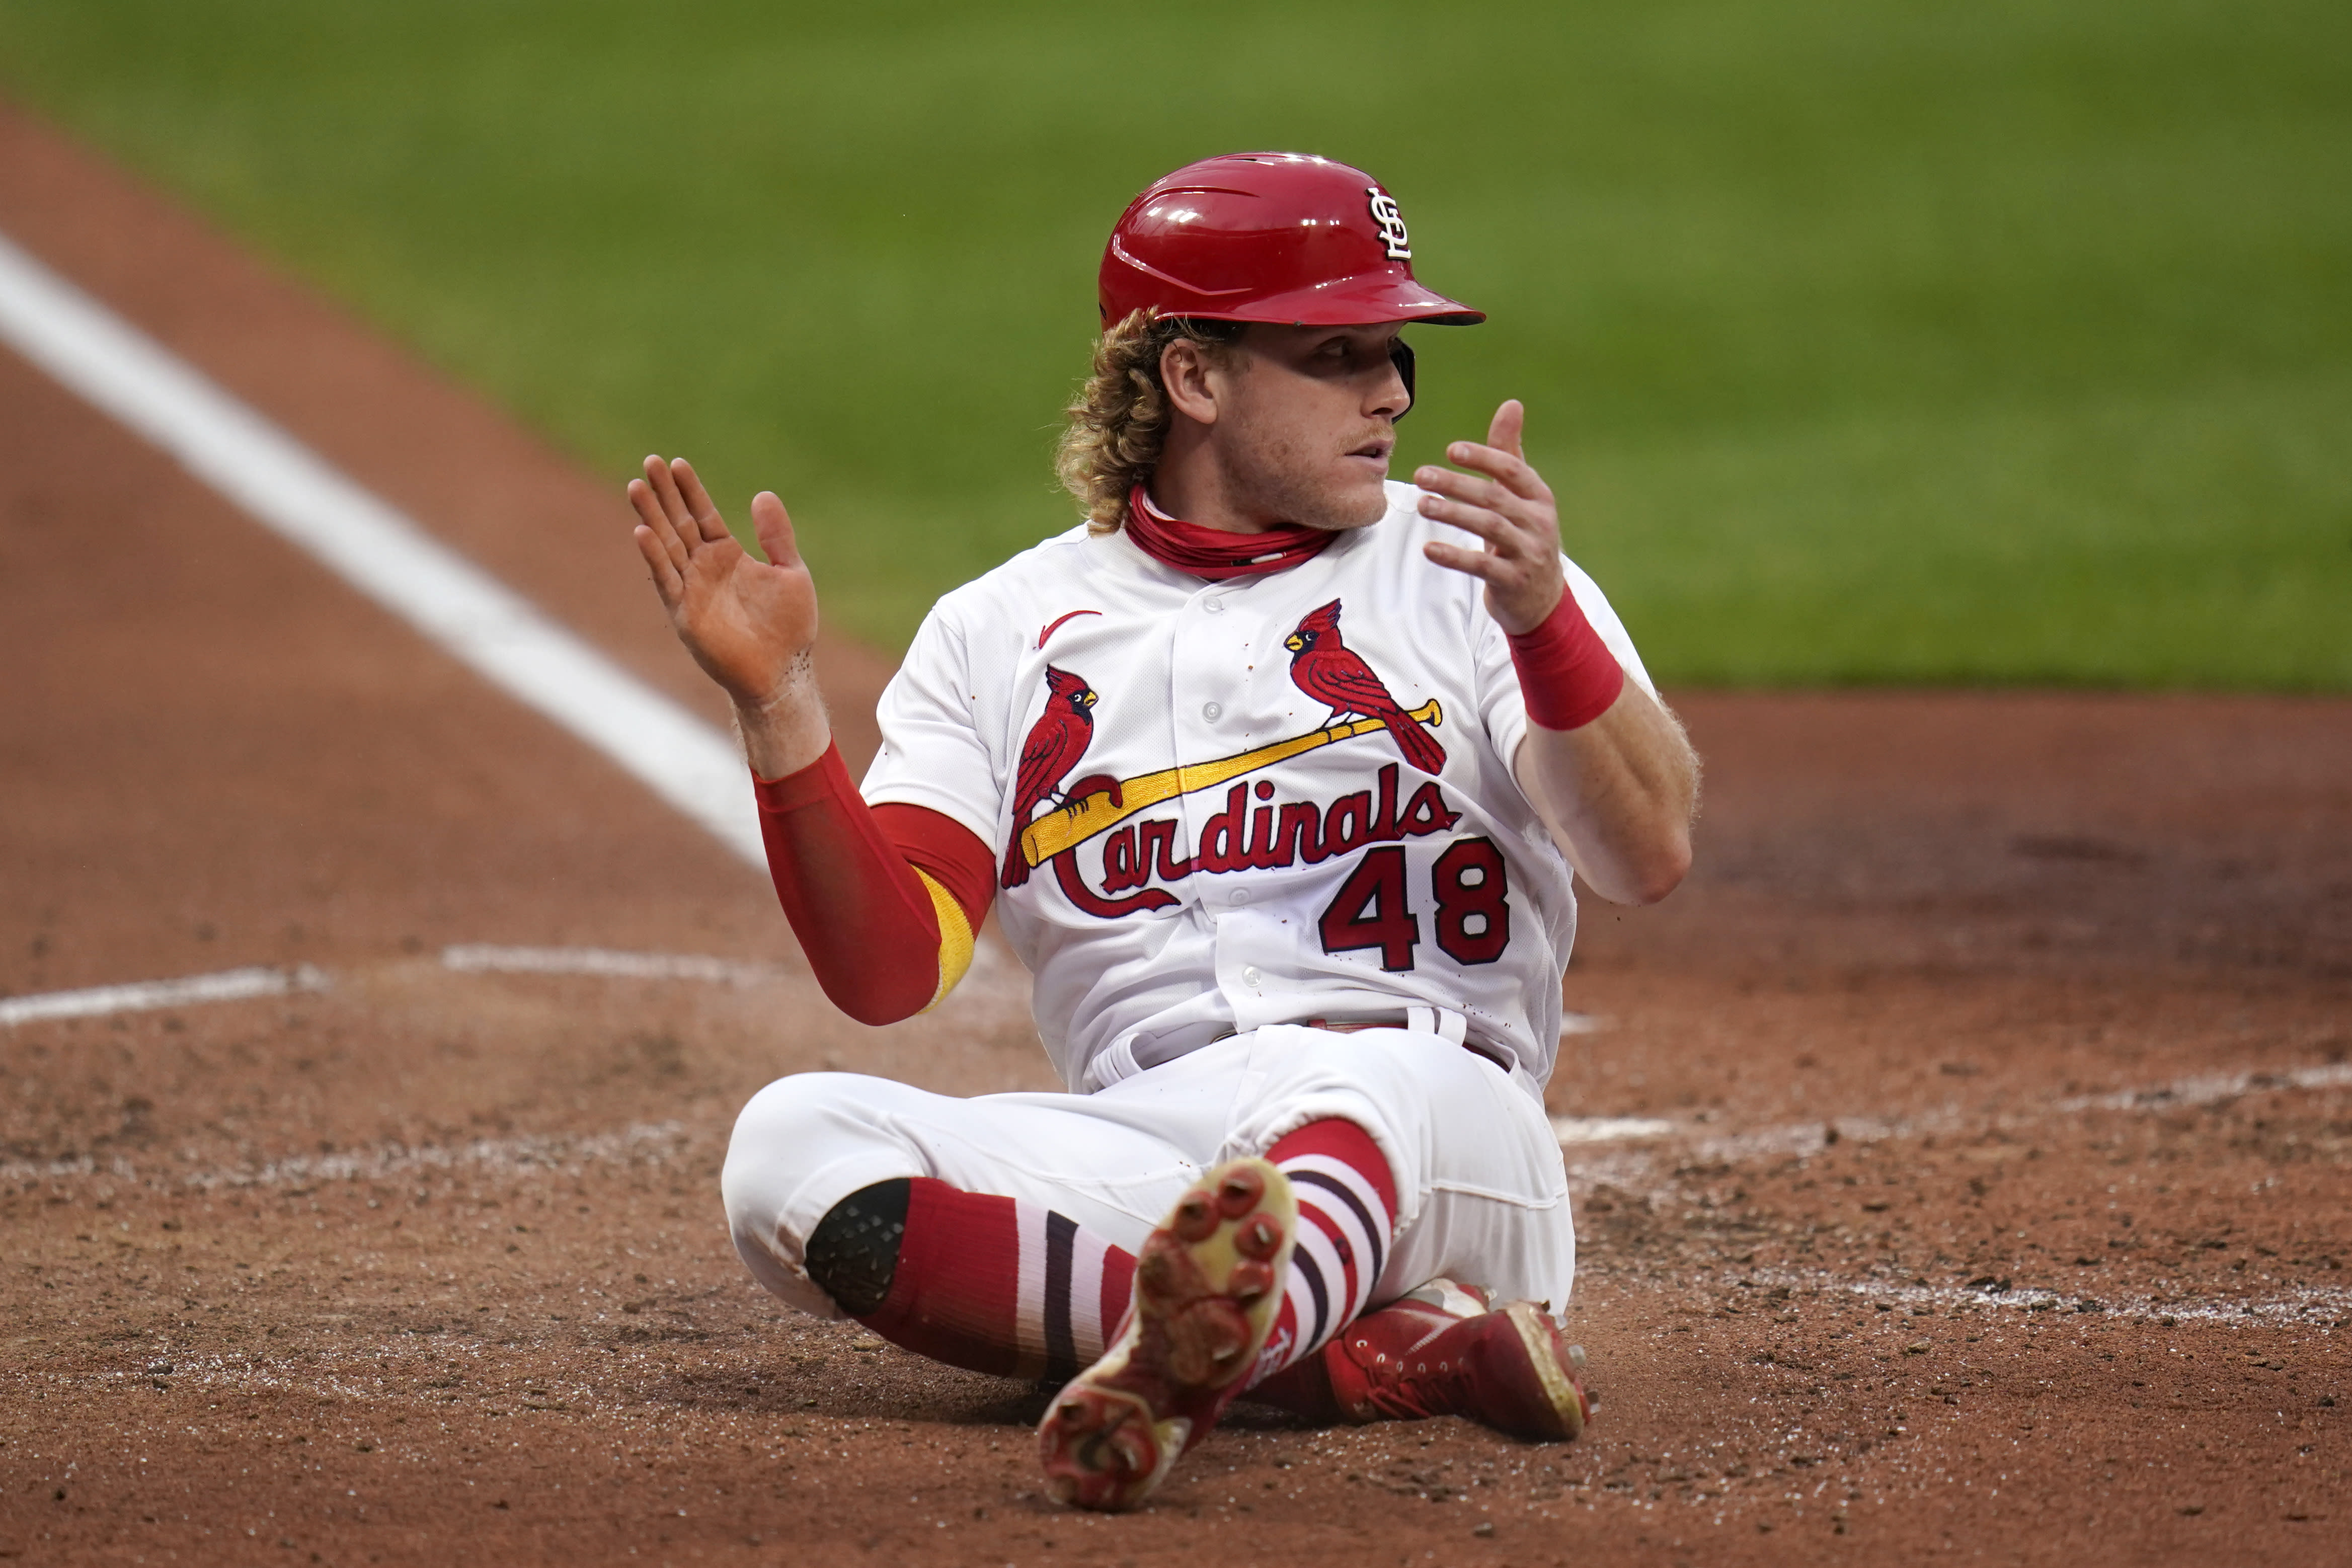 St. Louis Cardinals' Harrison Bader celebrates after scoring during the third inning in the second game of a baseball doubleheader against the Minnesota Twins Tuesday, Sept. 8, 2020, in St. Louis. (AP Photo/Jeff Roberson)